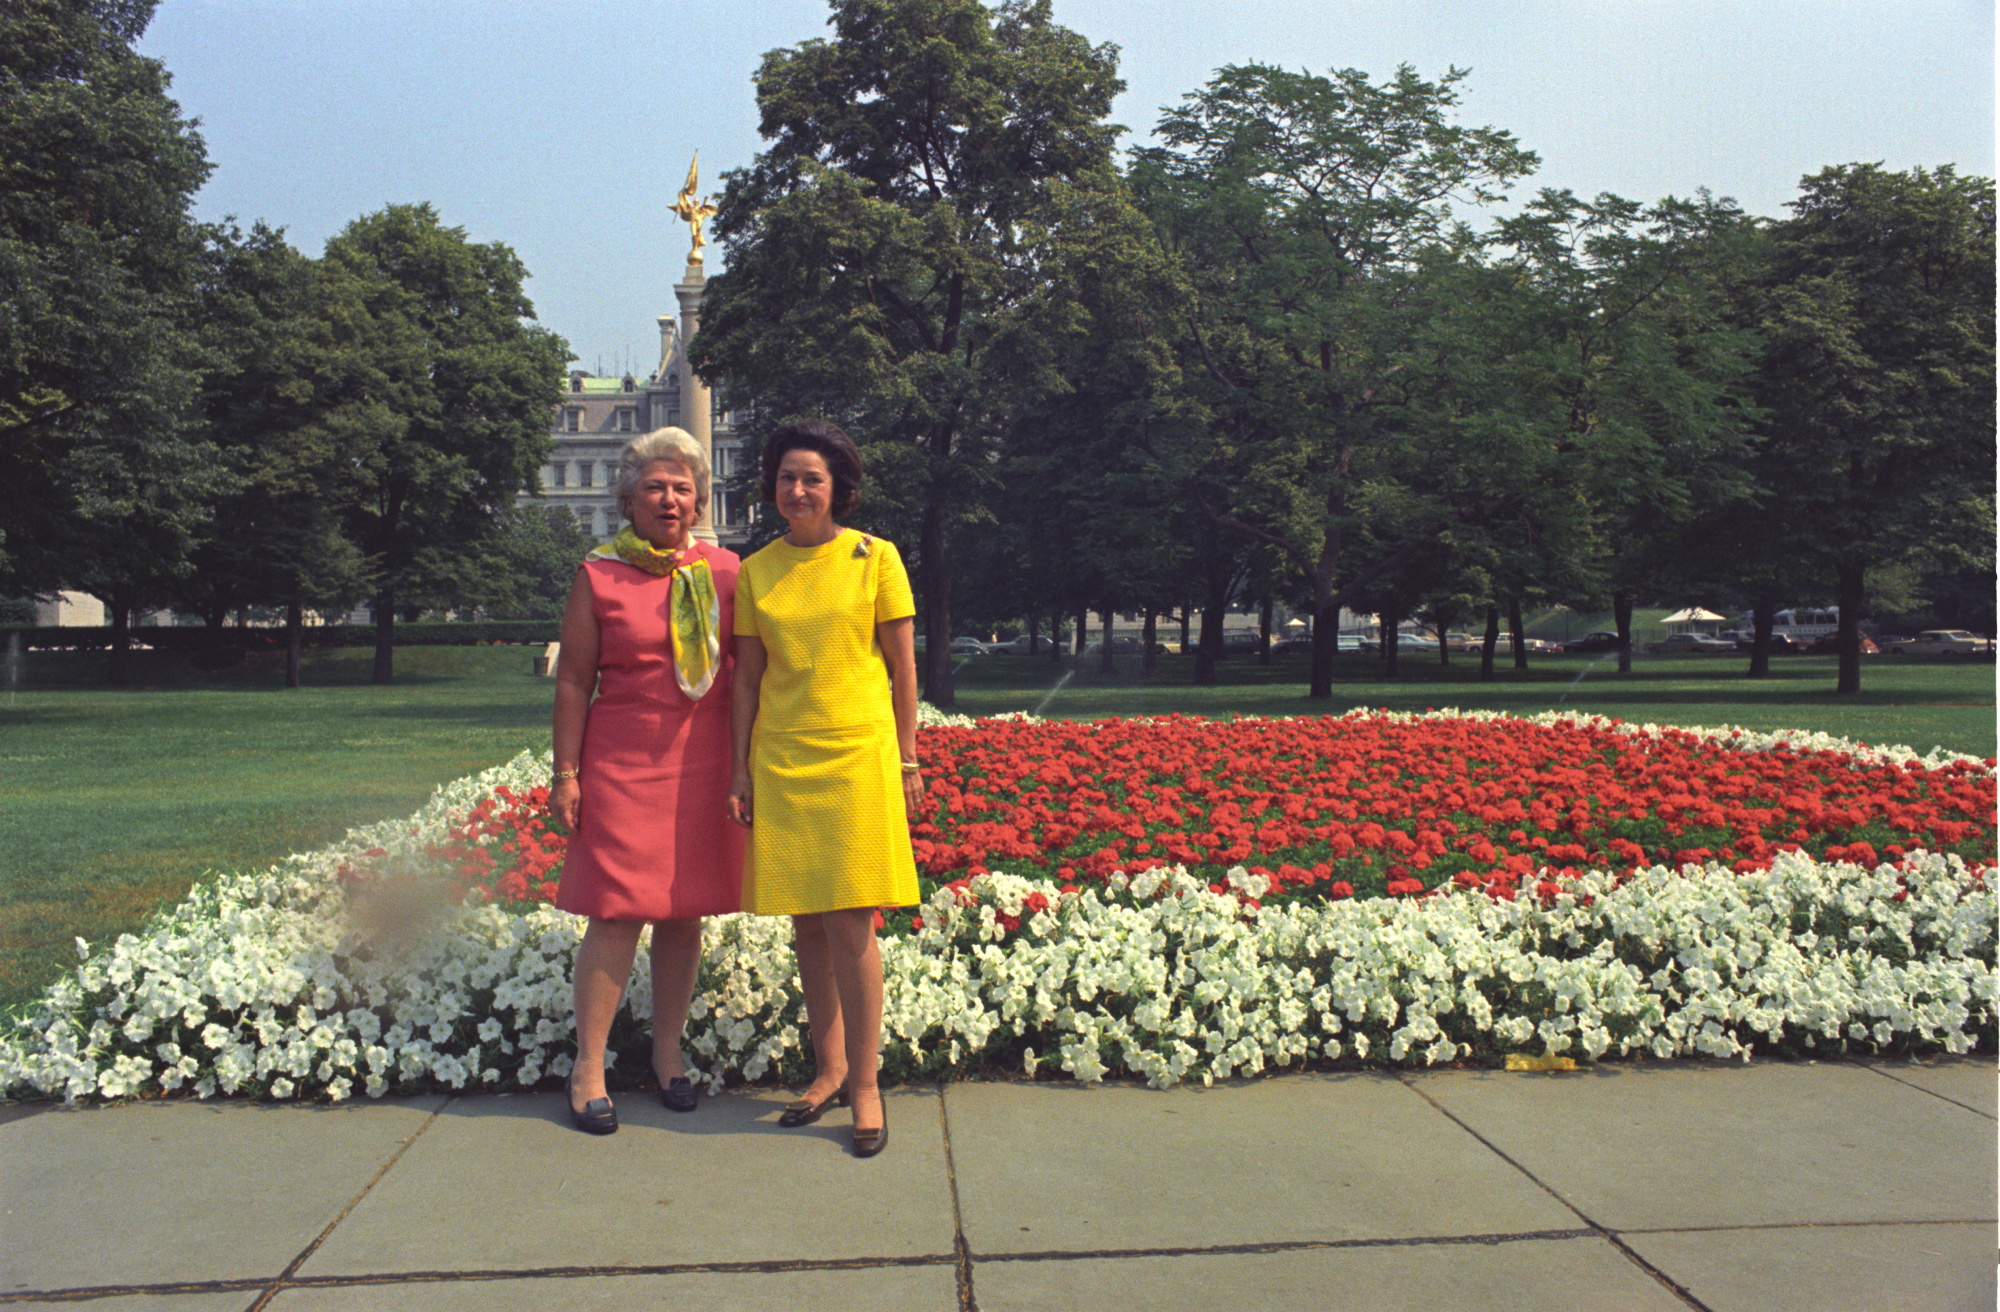 Credit: LBJ Library photo by Robert Knudsen